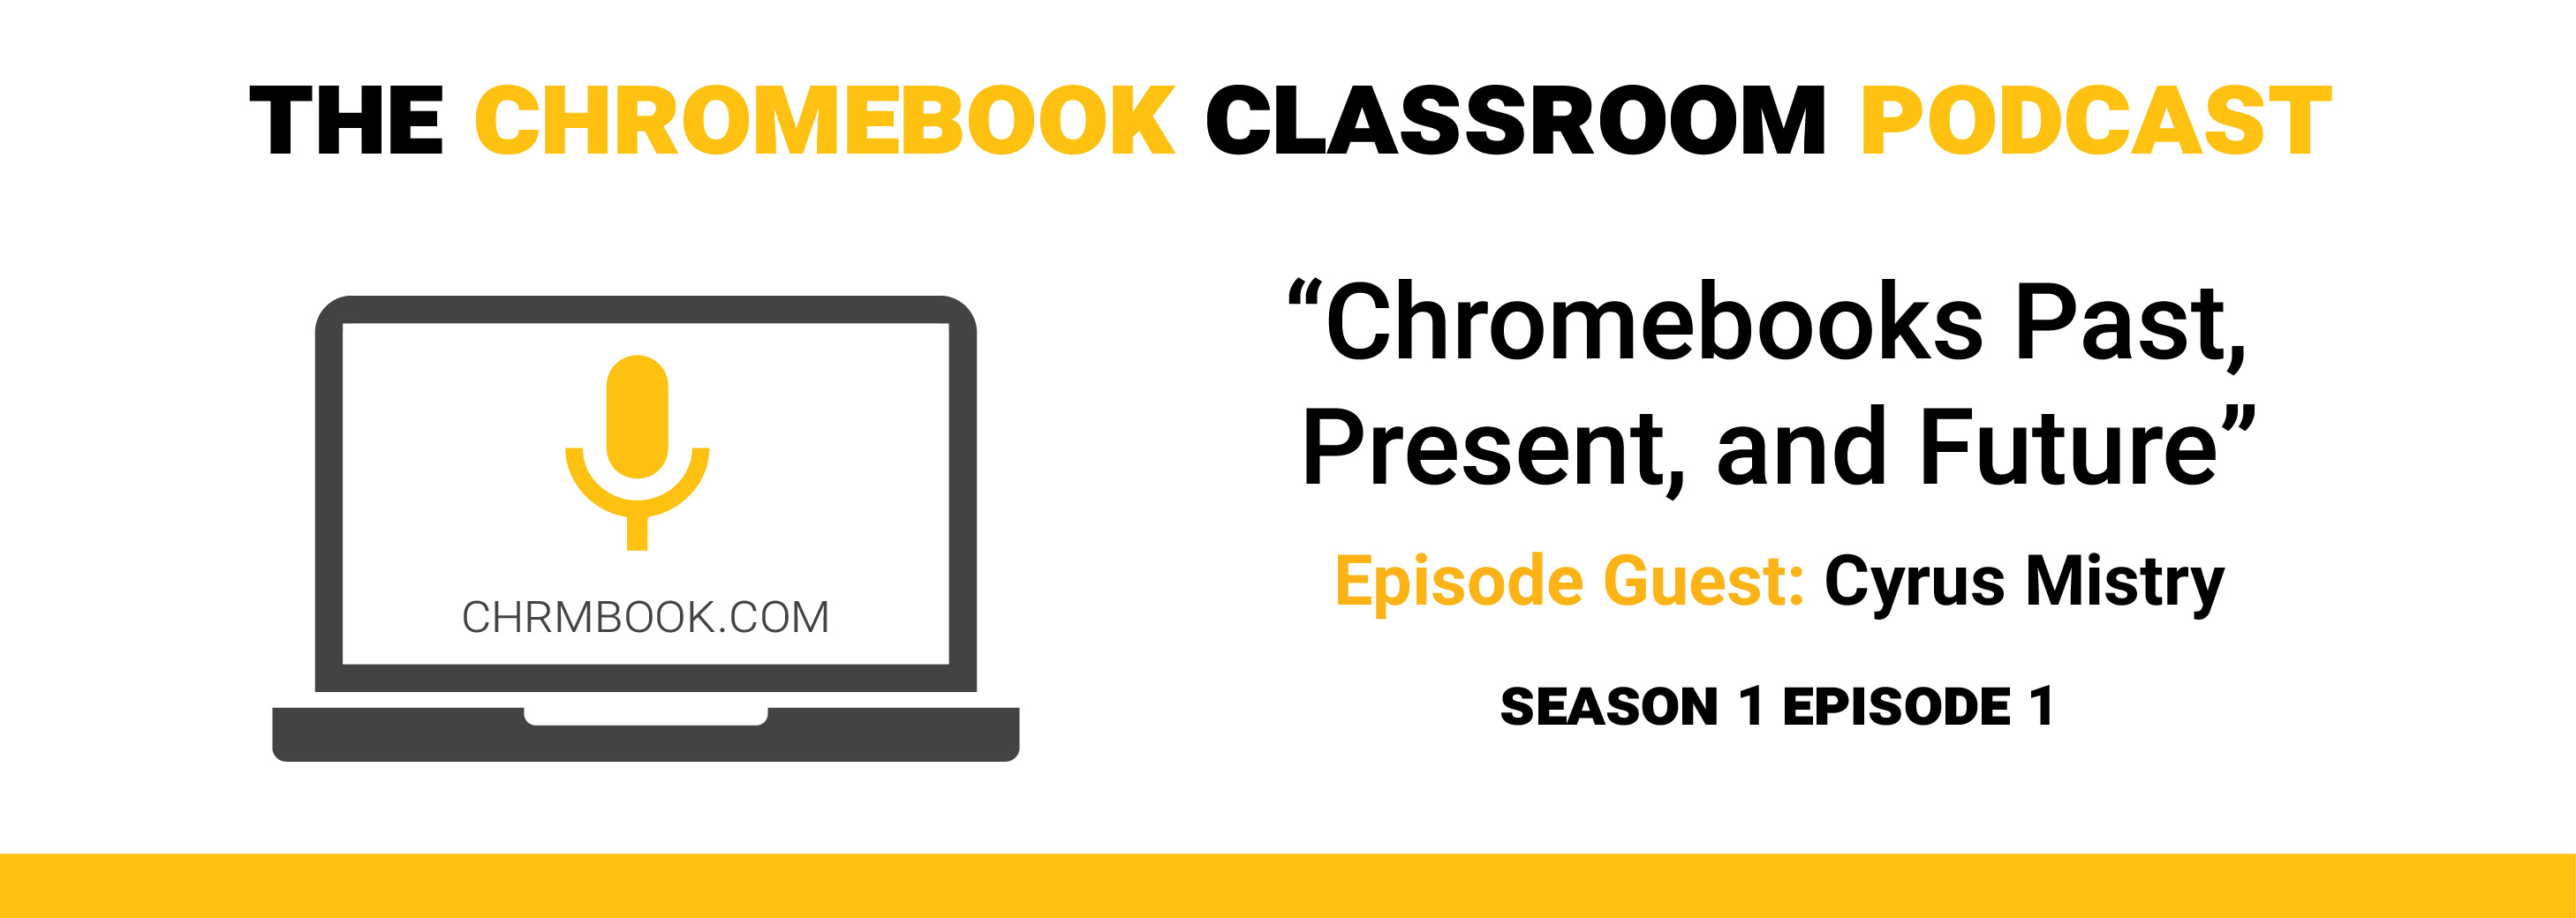 The Future Of Chromebooks With @mistrycy